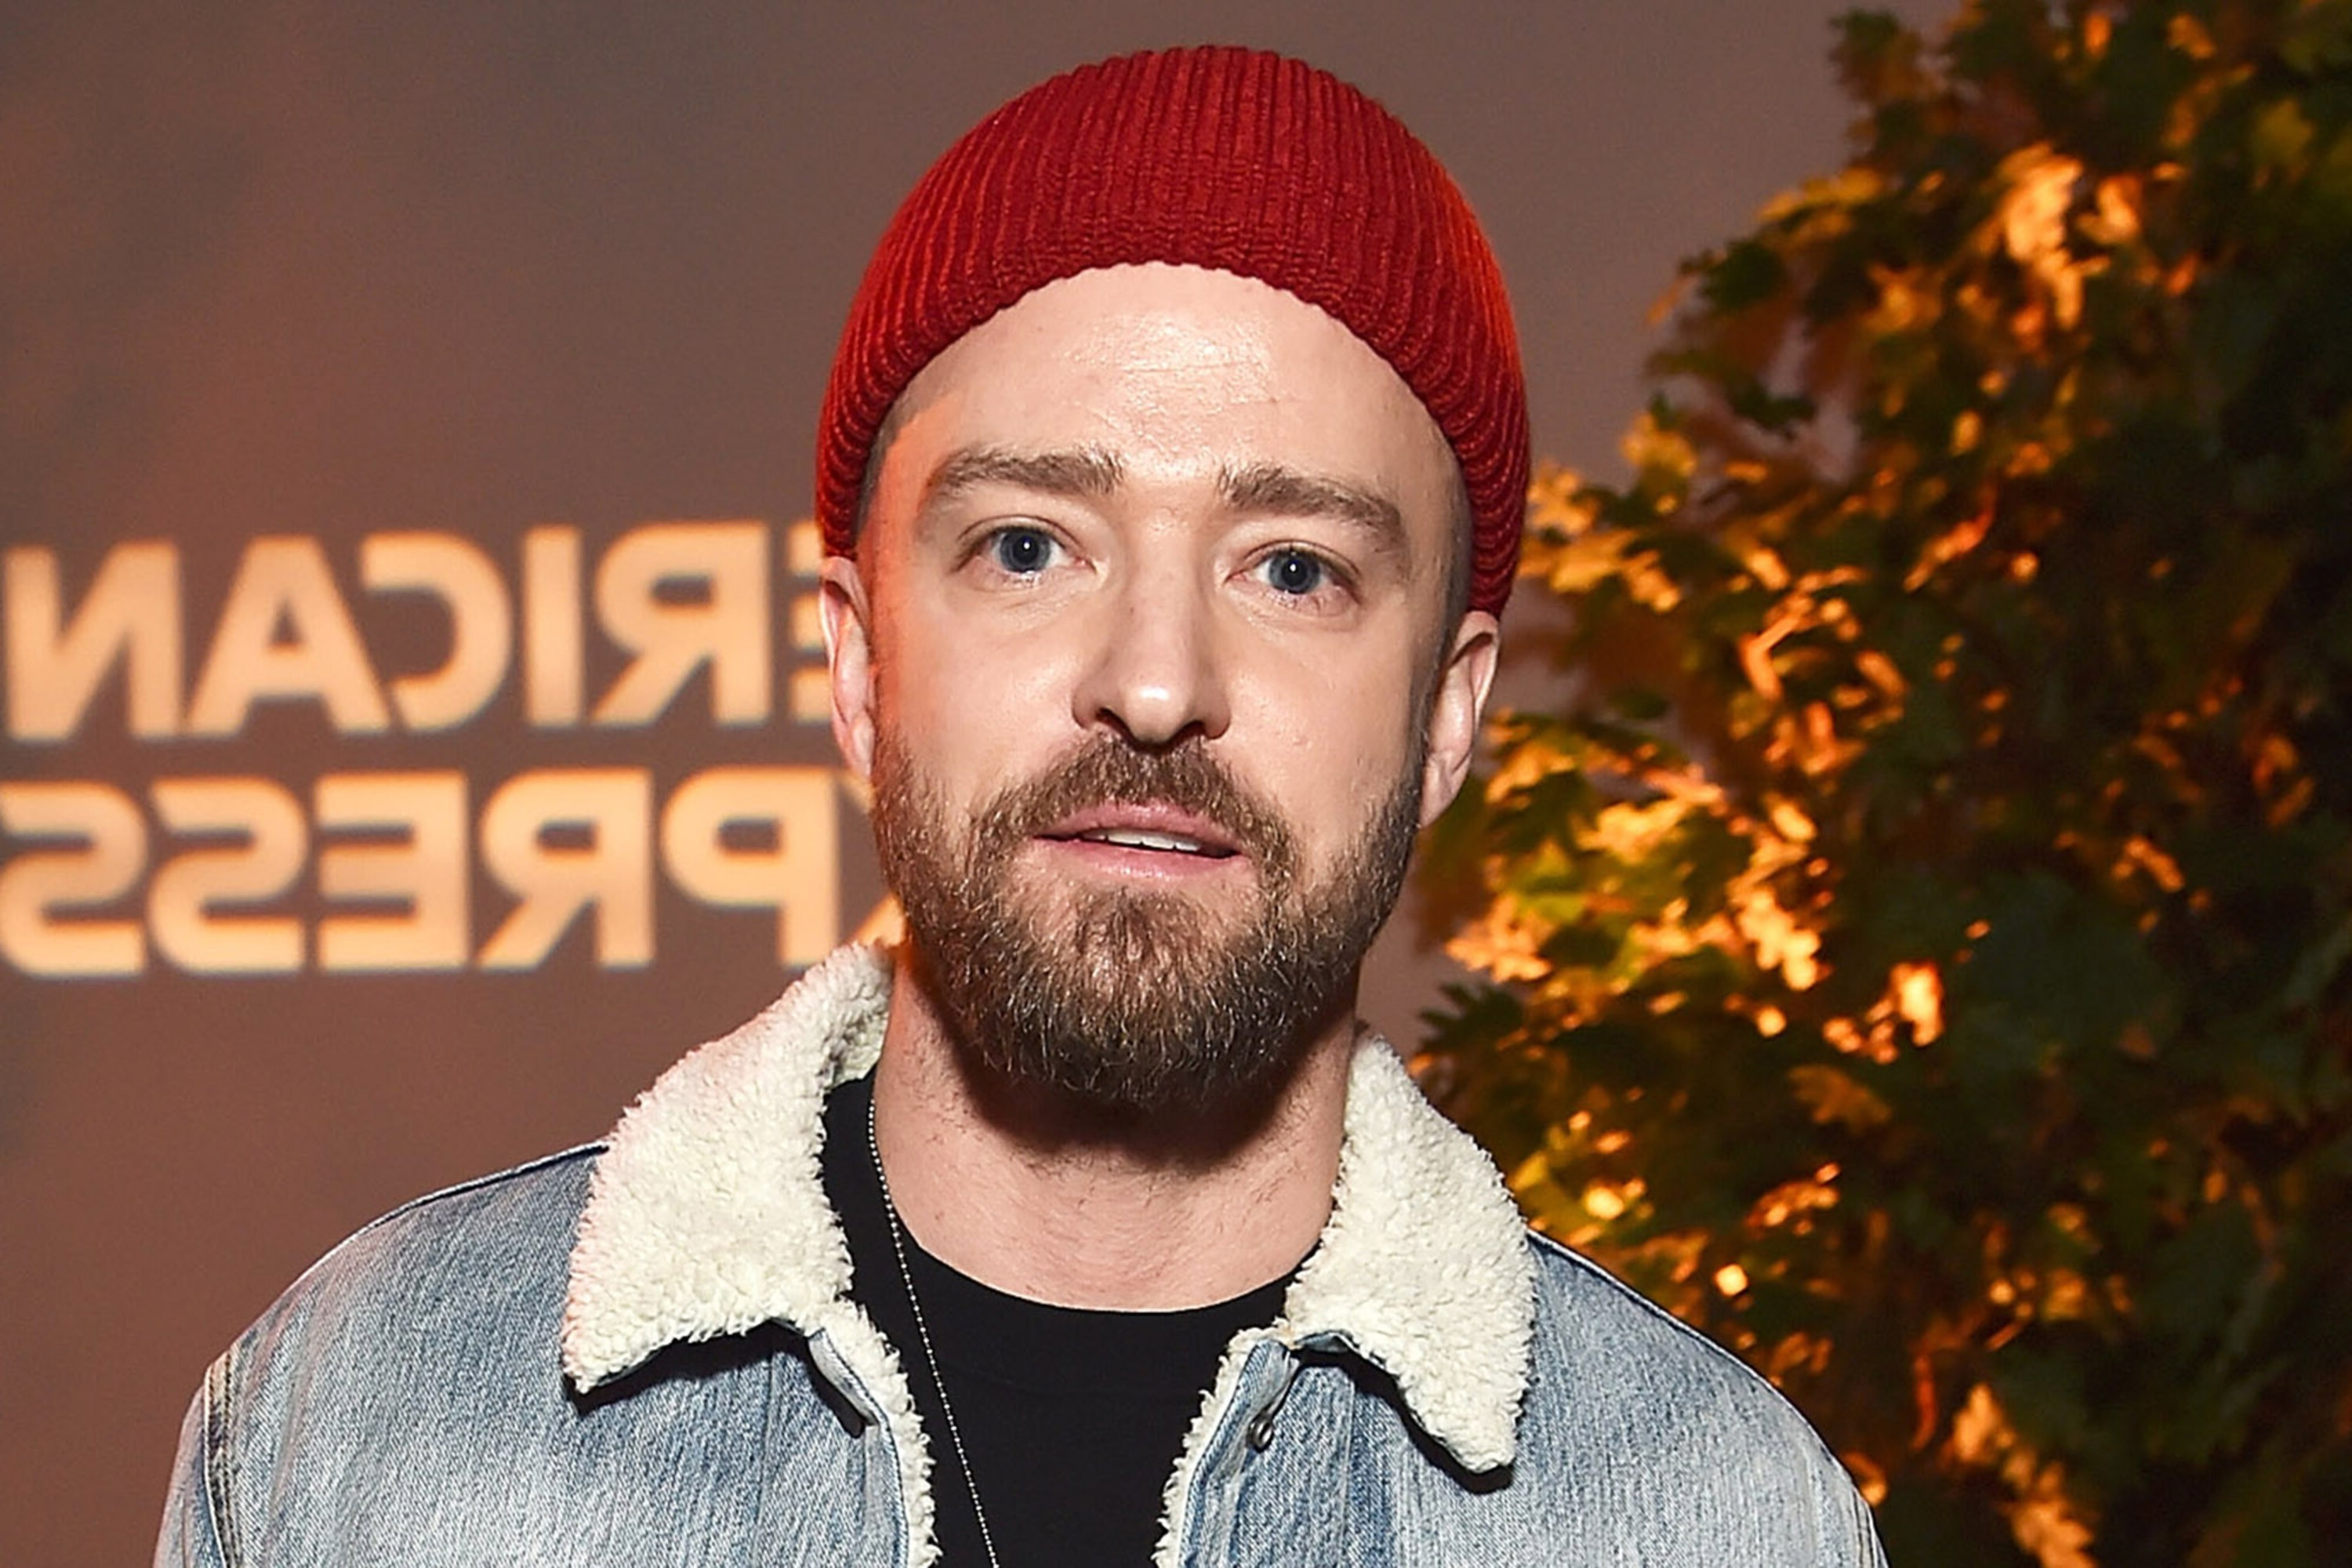 A full beard in the style of Justin Timberlake.